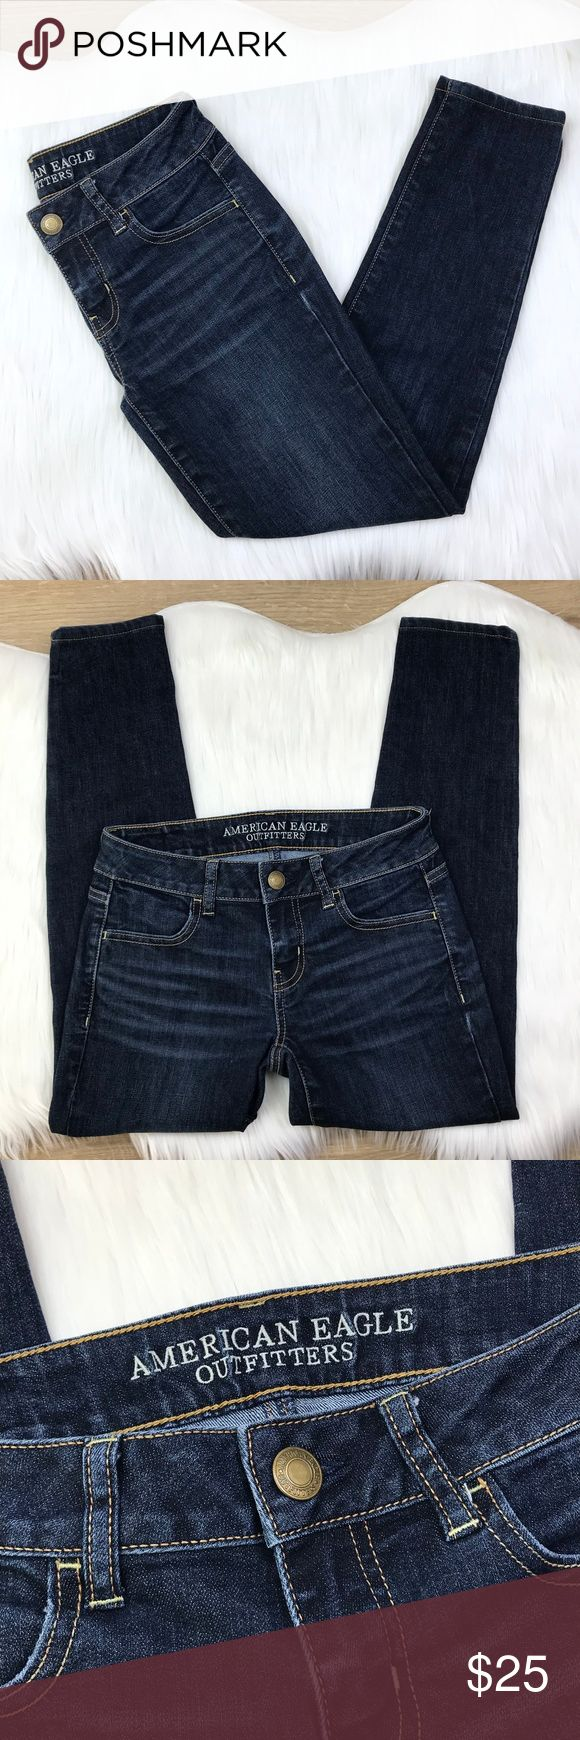 "[AEO] Women's Jegging Crop Jeans Dark Wash size 0 American Eagle Outfitters Women's Jegging Crop Jeans Dark Wash size 0. Low rise. Excellent pre-owned condition. LB160B076  Waist: 28"" Hip: 34"" Inseam: 26"" Rise: 7.5"" Leg opening: 10"" American Eagle Outfitters Jeans Skinny"